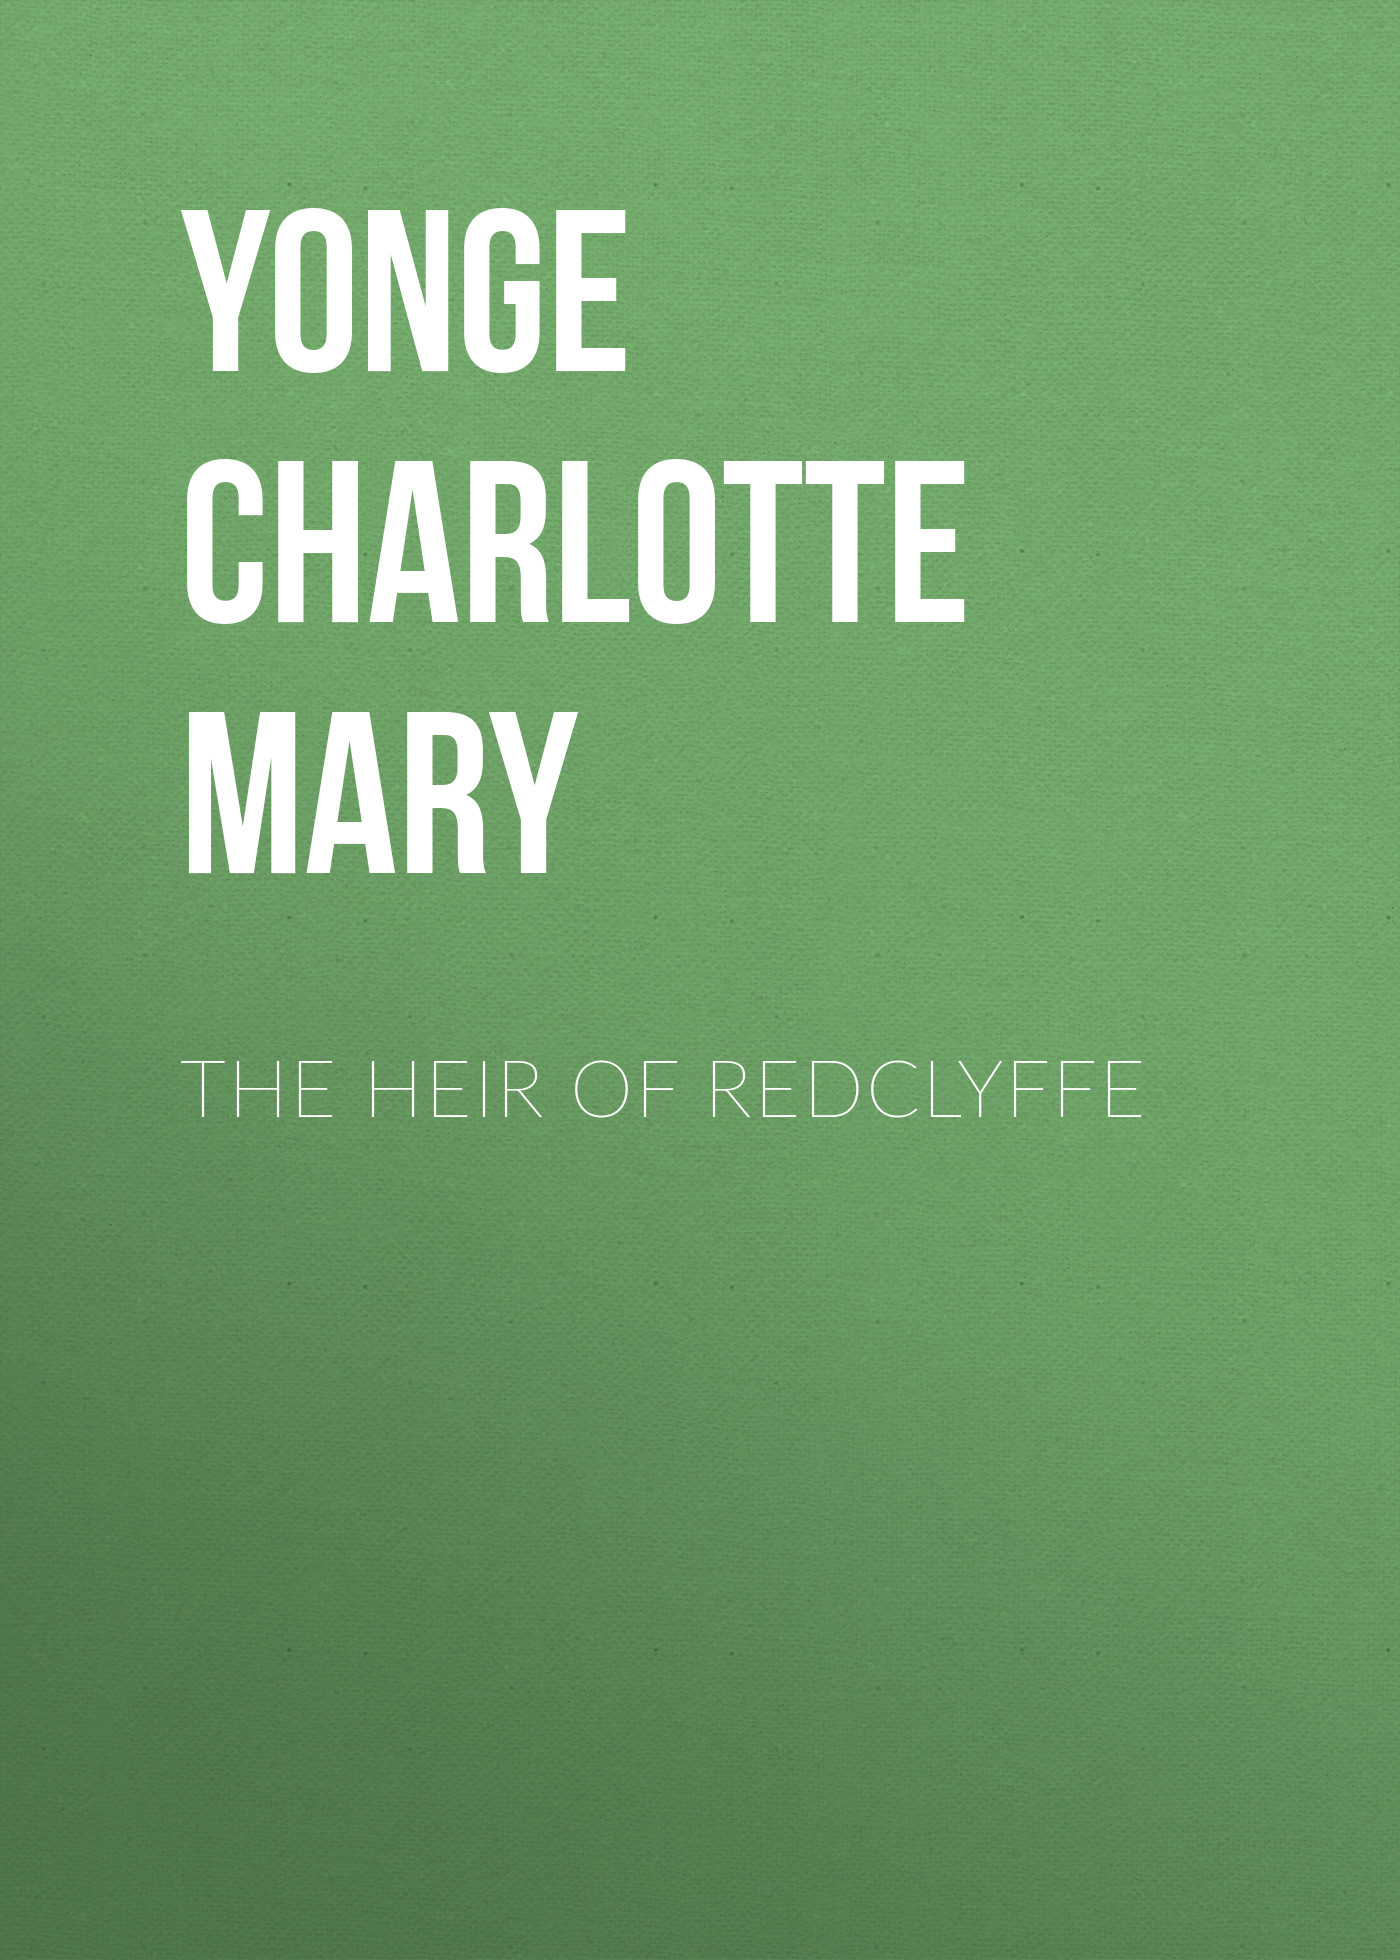 Yonge Charlotte Mary The Heir of Redclyffe yonge charlotte mary history of france